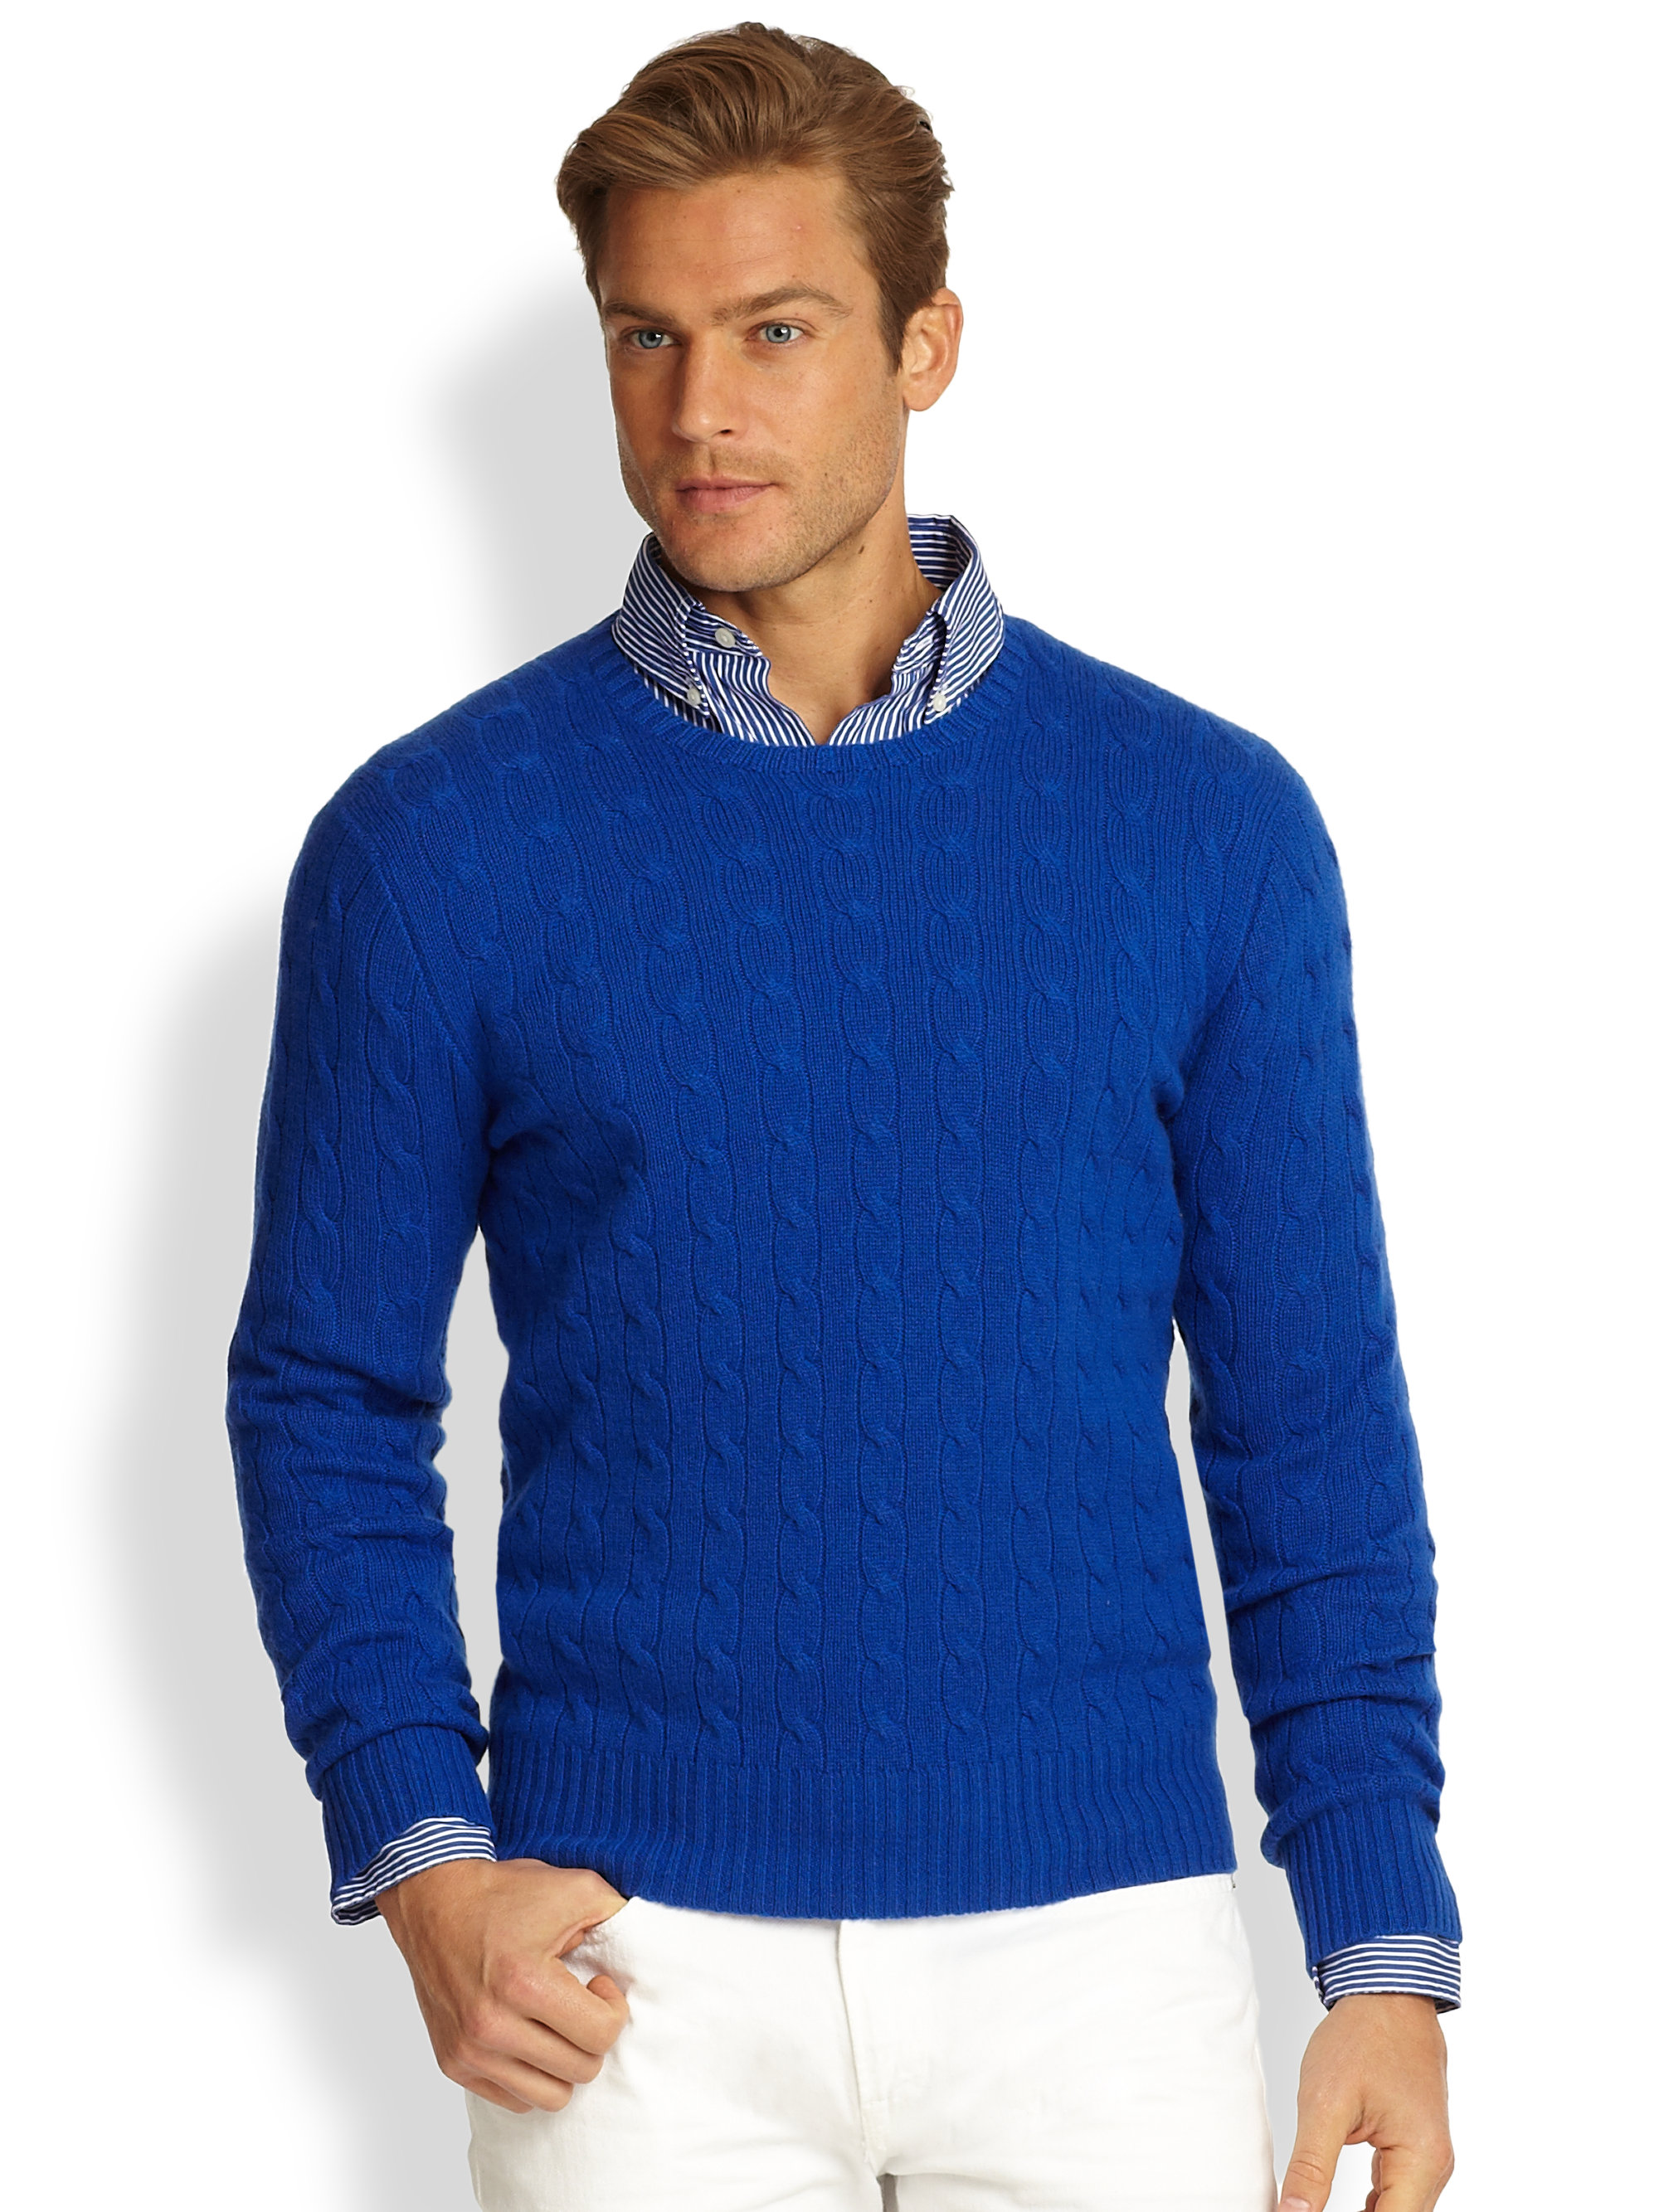 e1a5d4ed4fce0 Polo Ralph Lauren Cableknit Cashmere Sweater in Blue for Men - Lyst